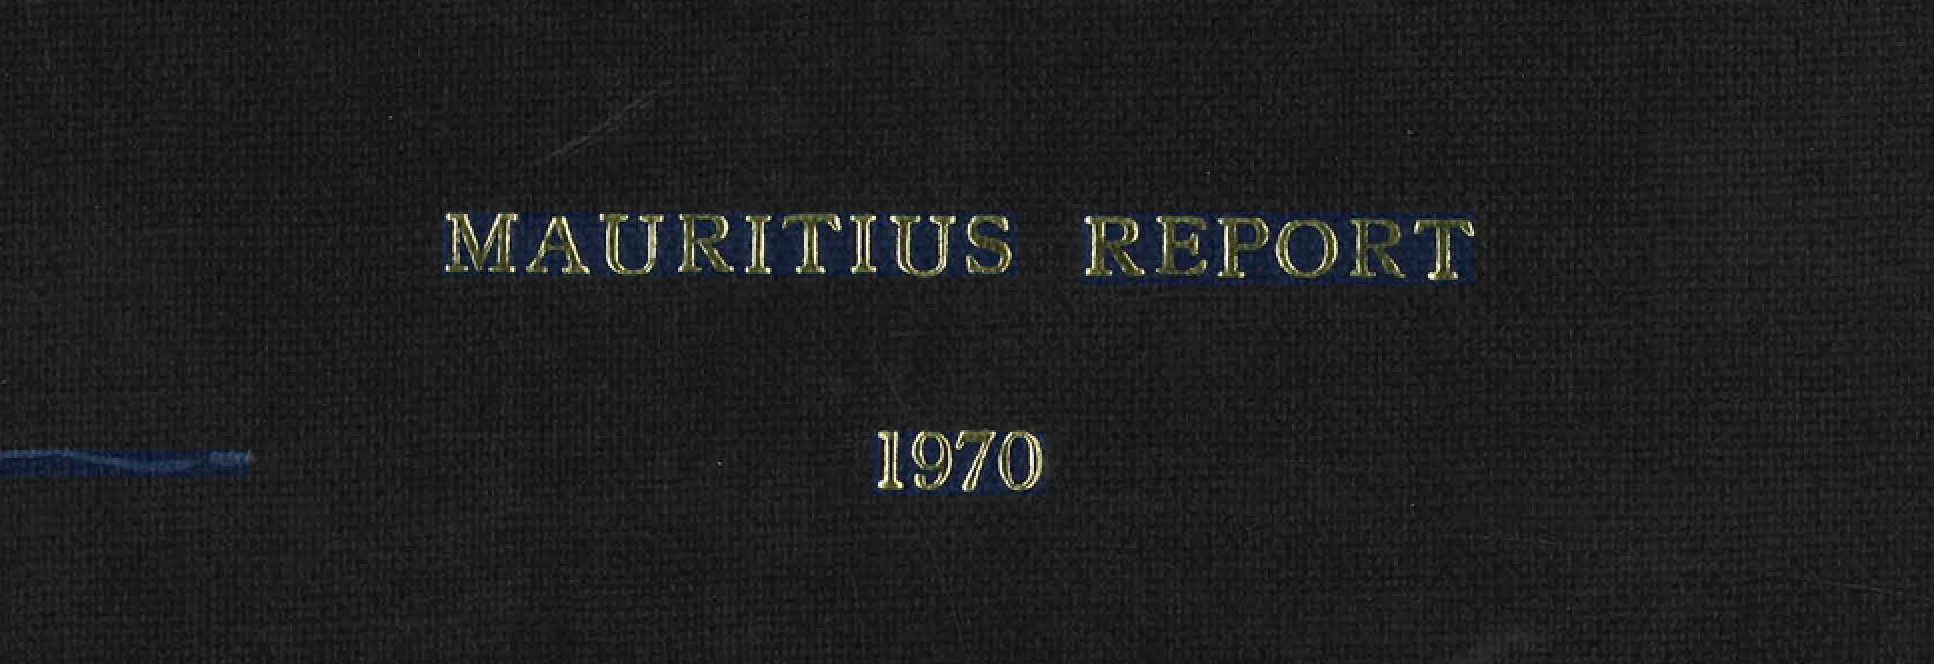 Report cover (detail)